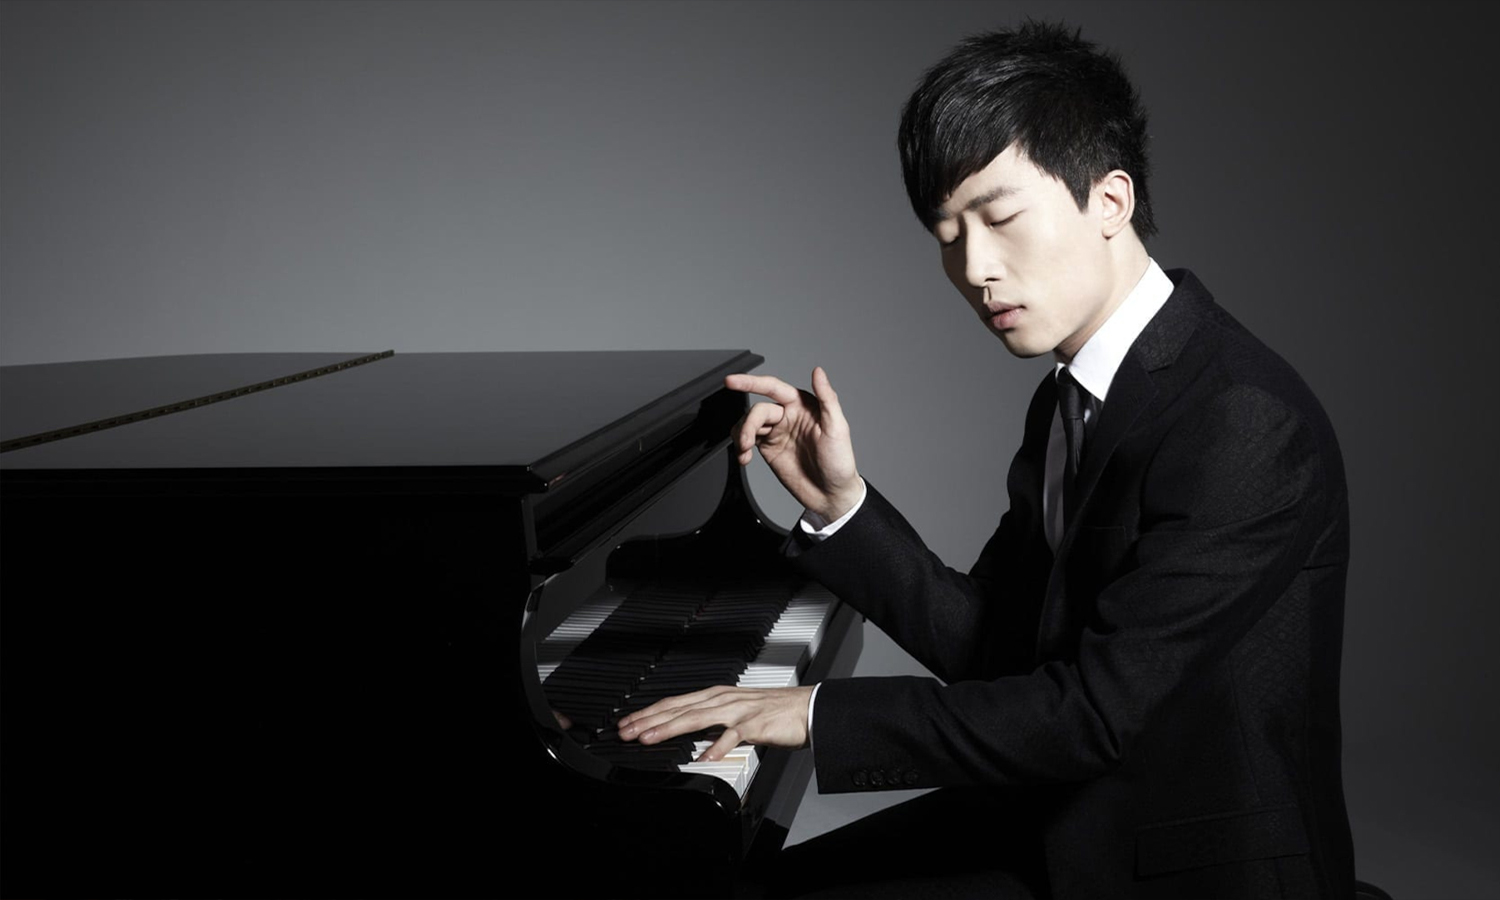 Ji Liu performing at the piano with a grey background